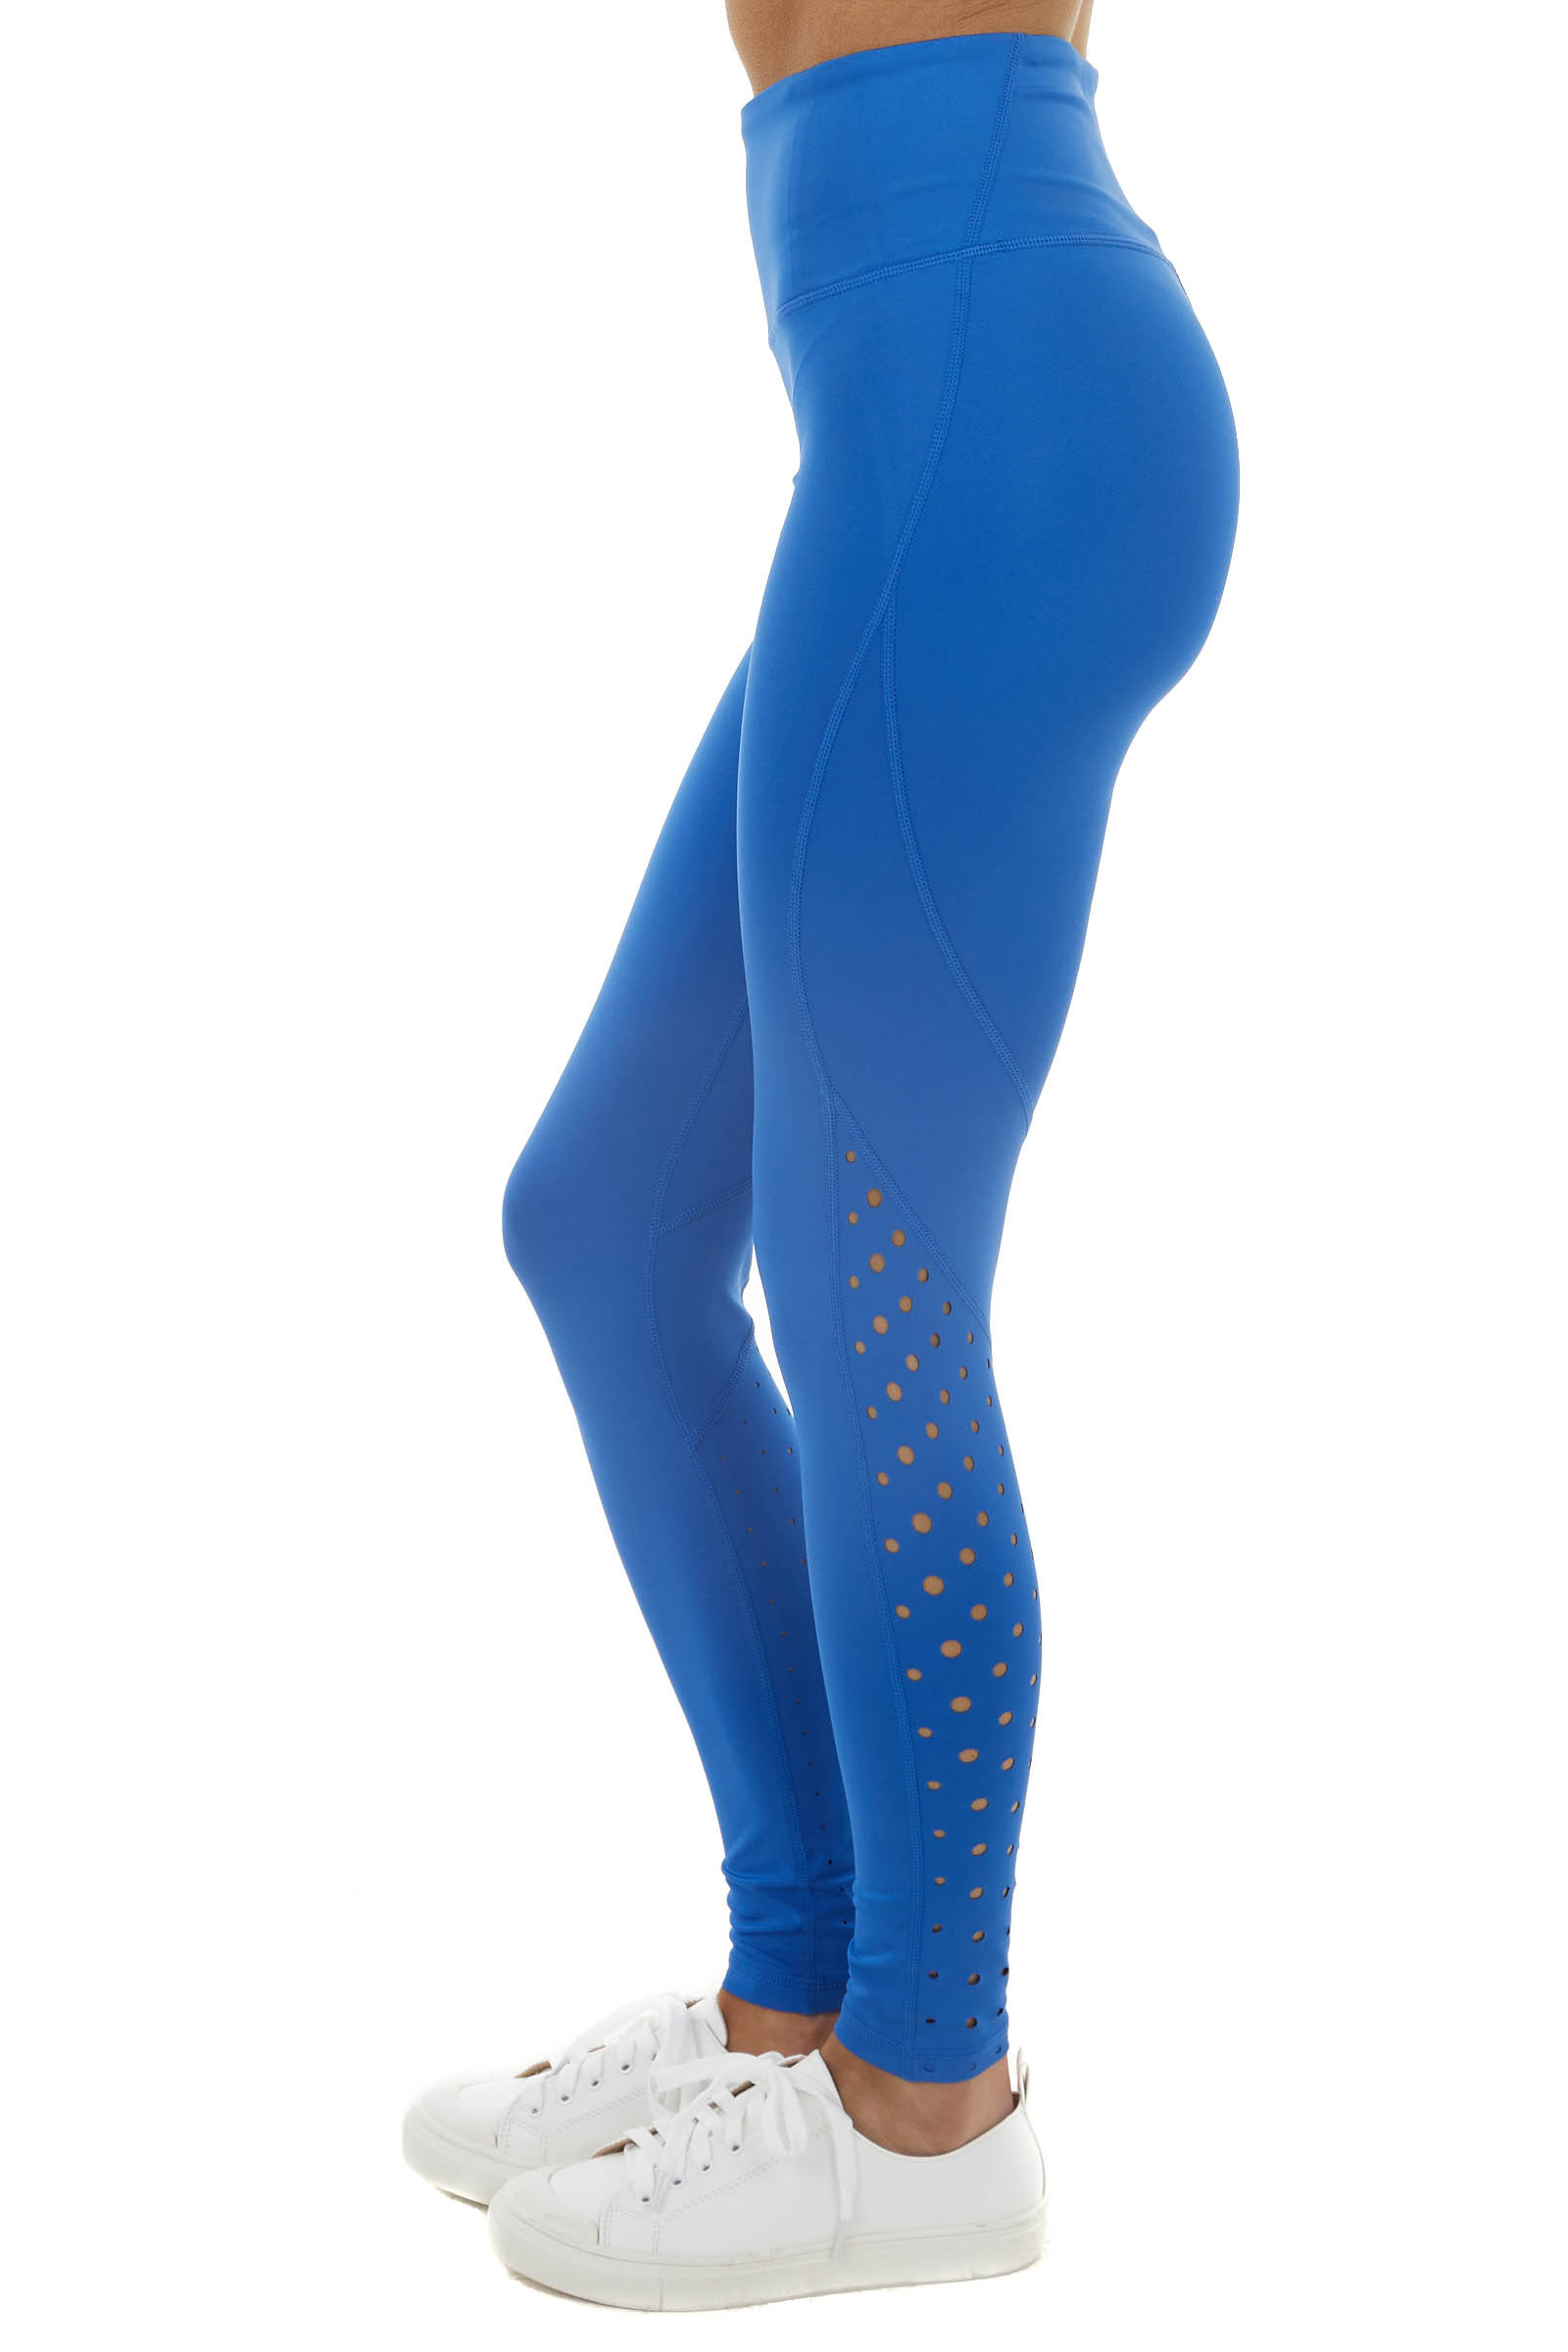 Royal Blue High Waist Leggings with Spotted Cut Out Details